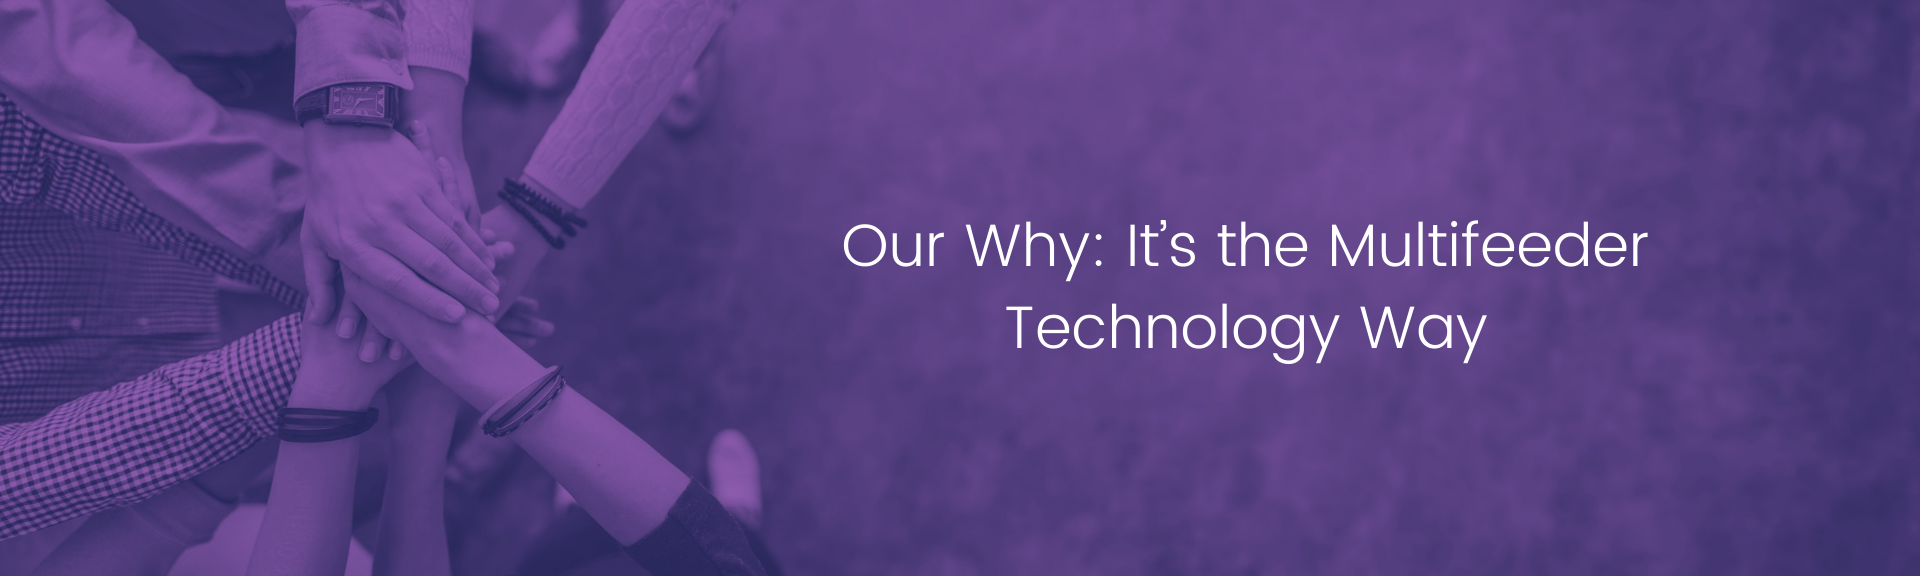 _Our Why_ It's the Multifeeder Technology Way